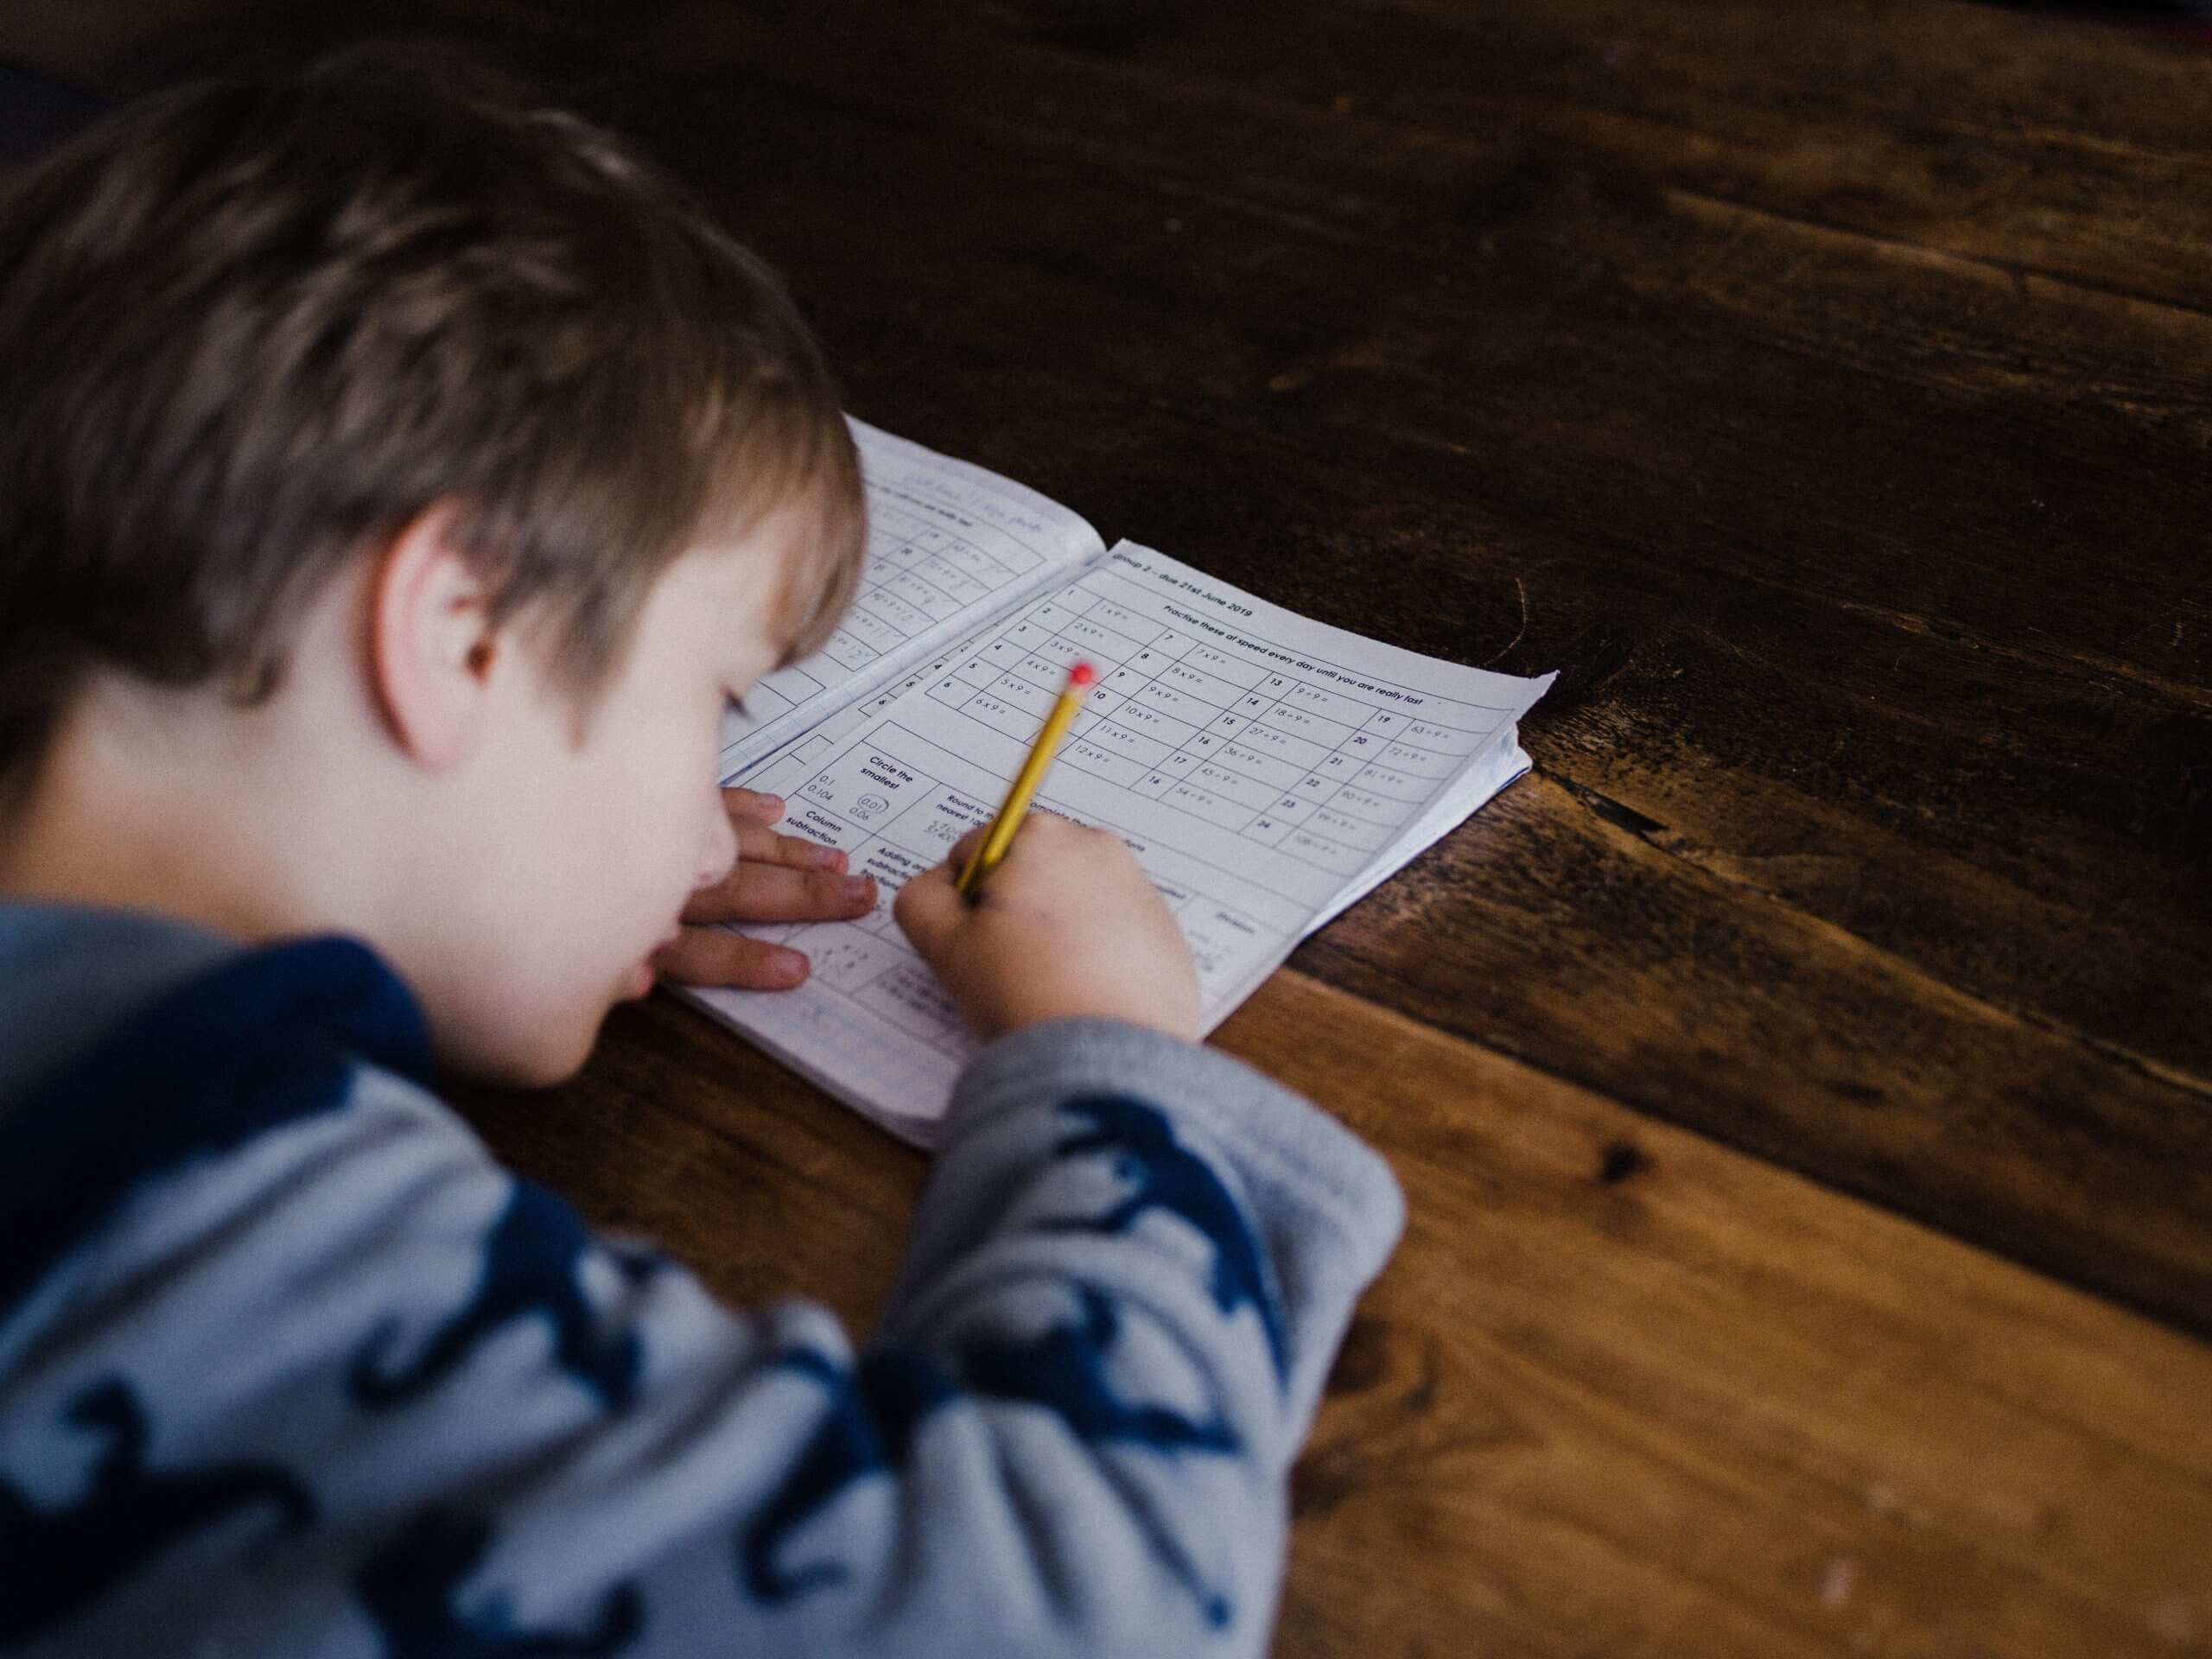 How to Prepare Your Home For Homeschooling This Fall